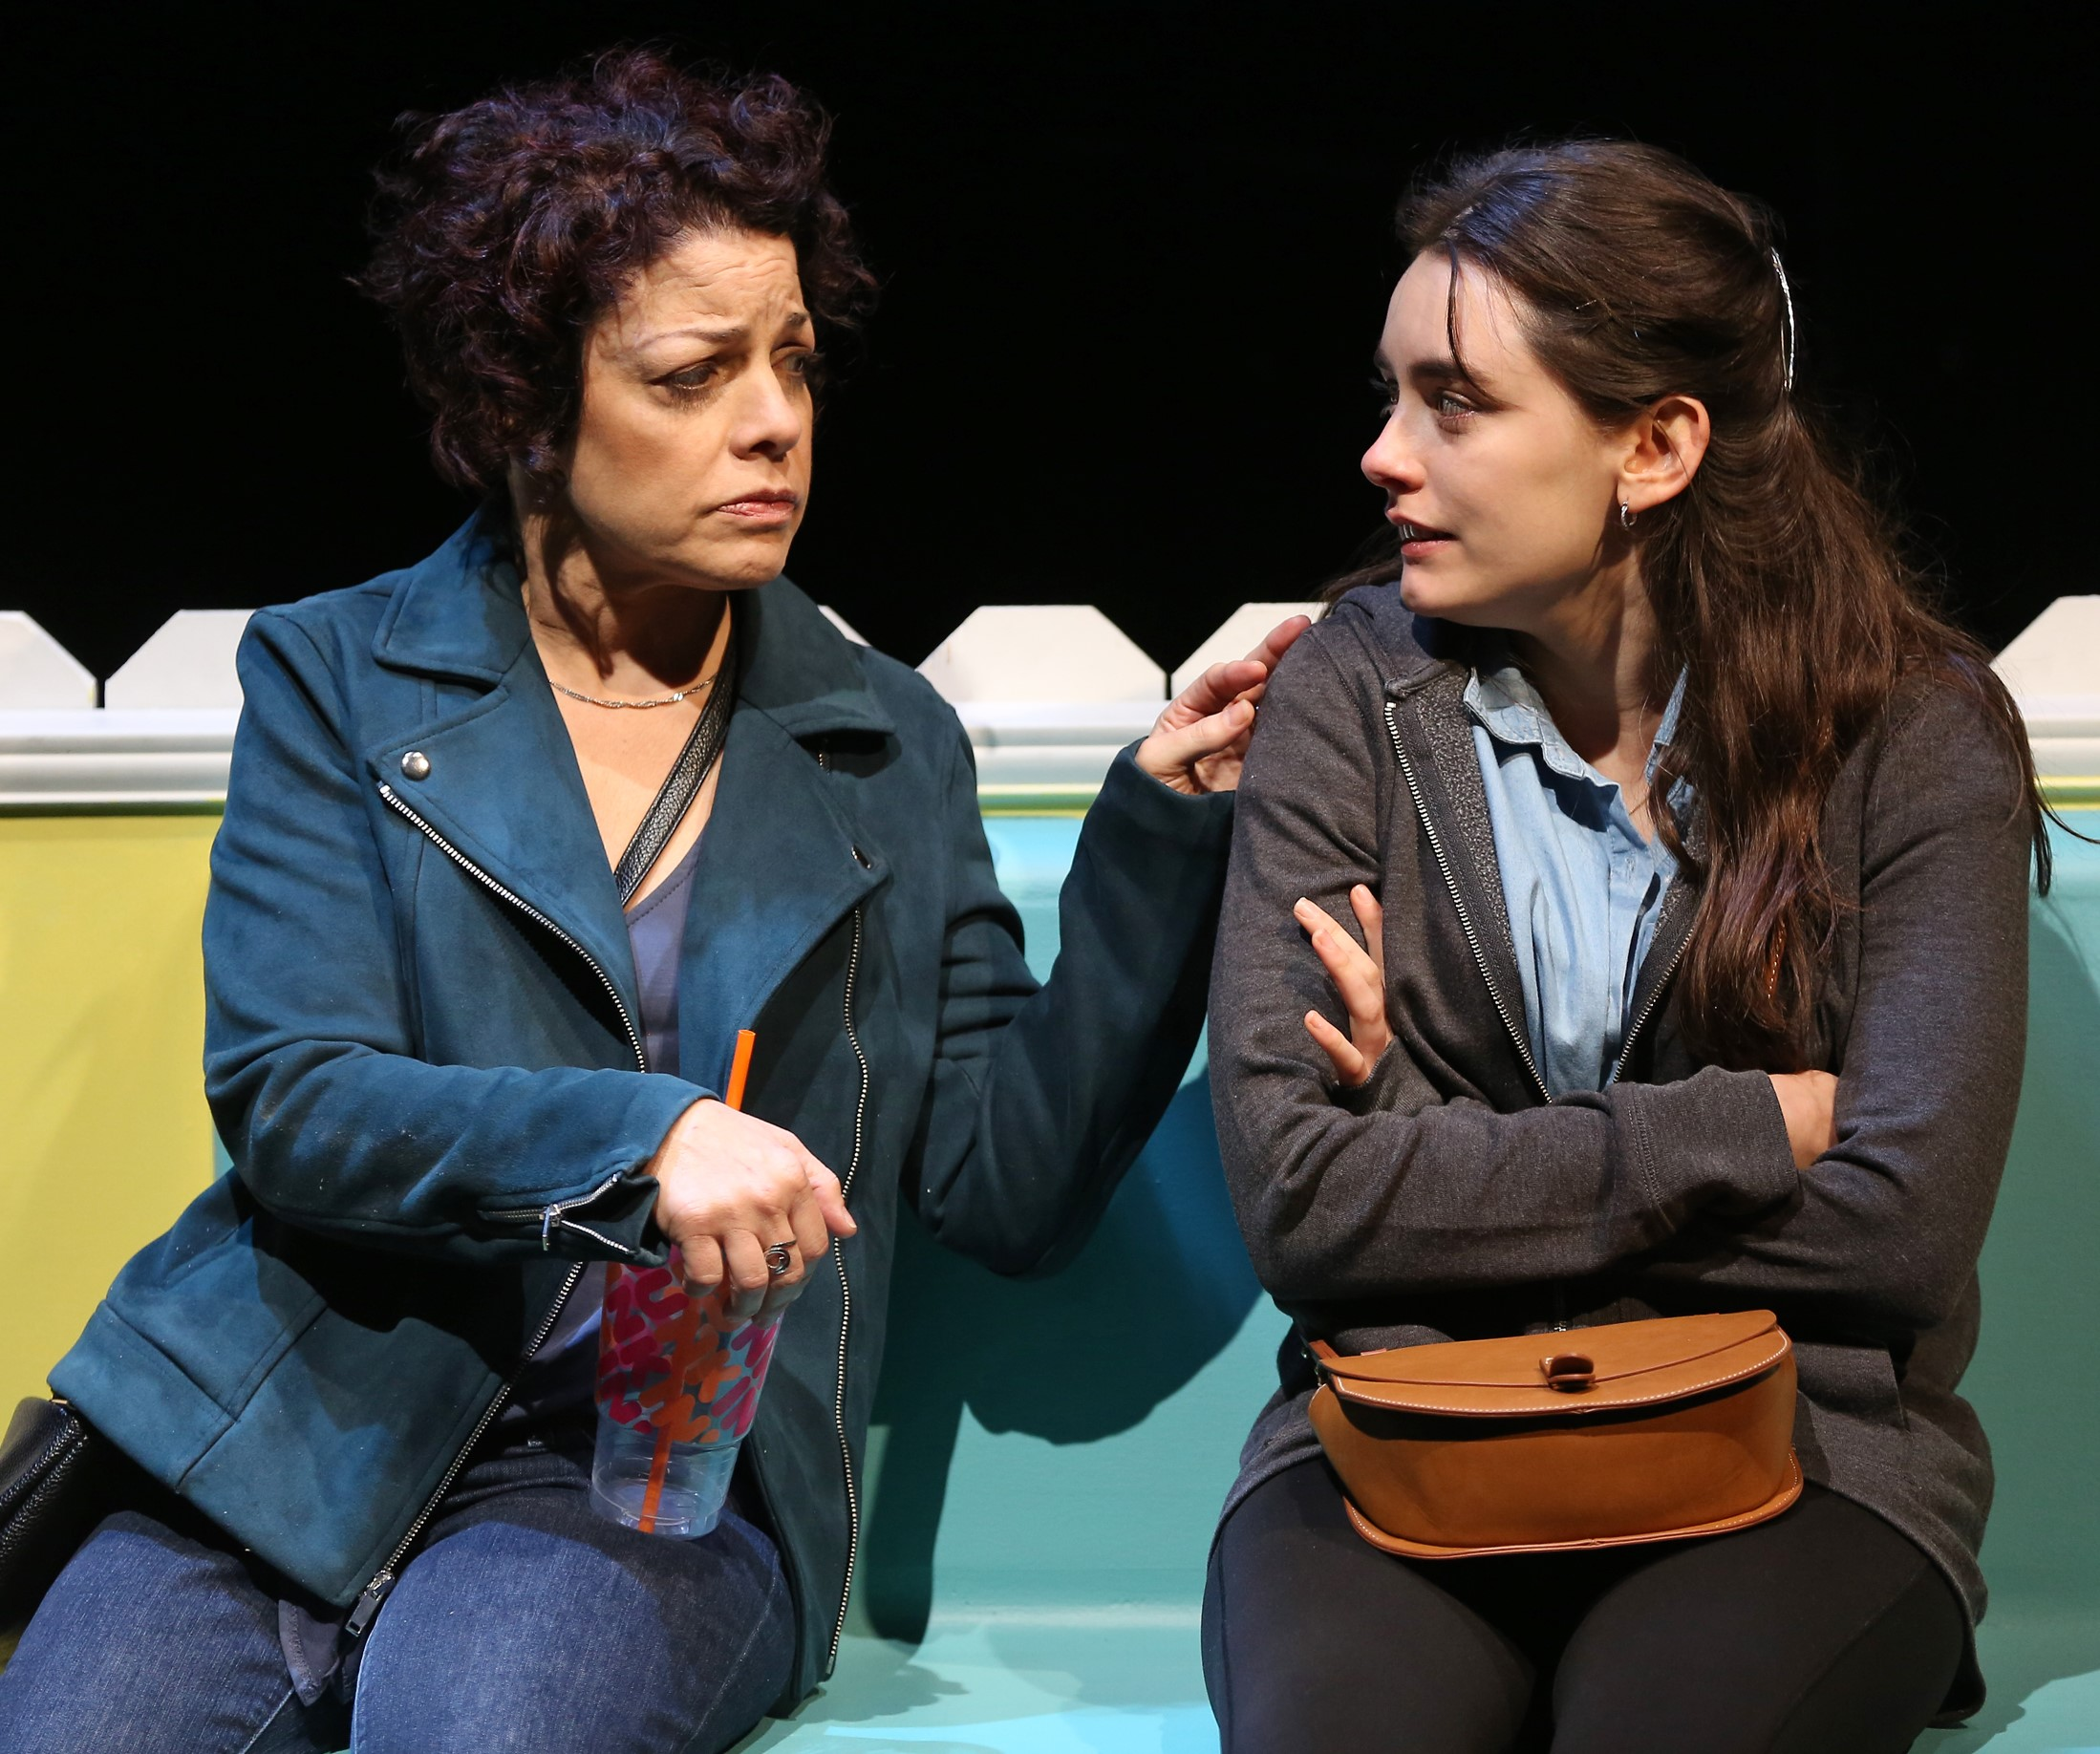 Miriam counsels a troubled Hannah.